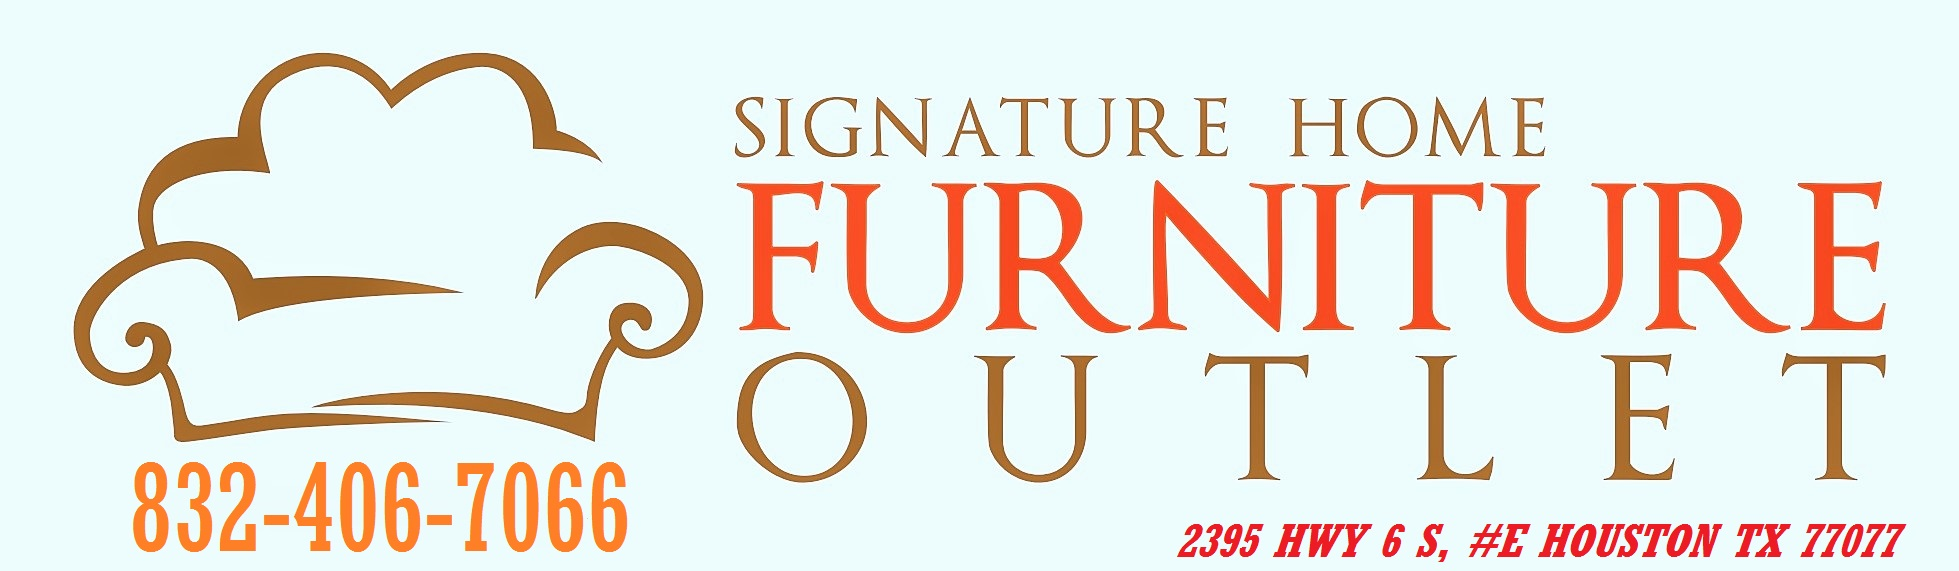 SIGNATURE HOME FURNITURE OUTLET 2395 Highway 6 S Ste E, Houston, TX 77077    YP.com